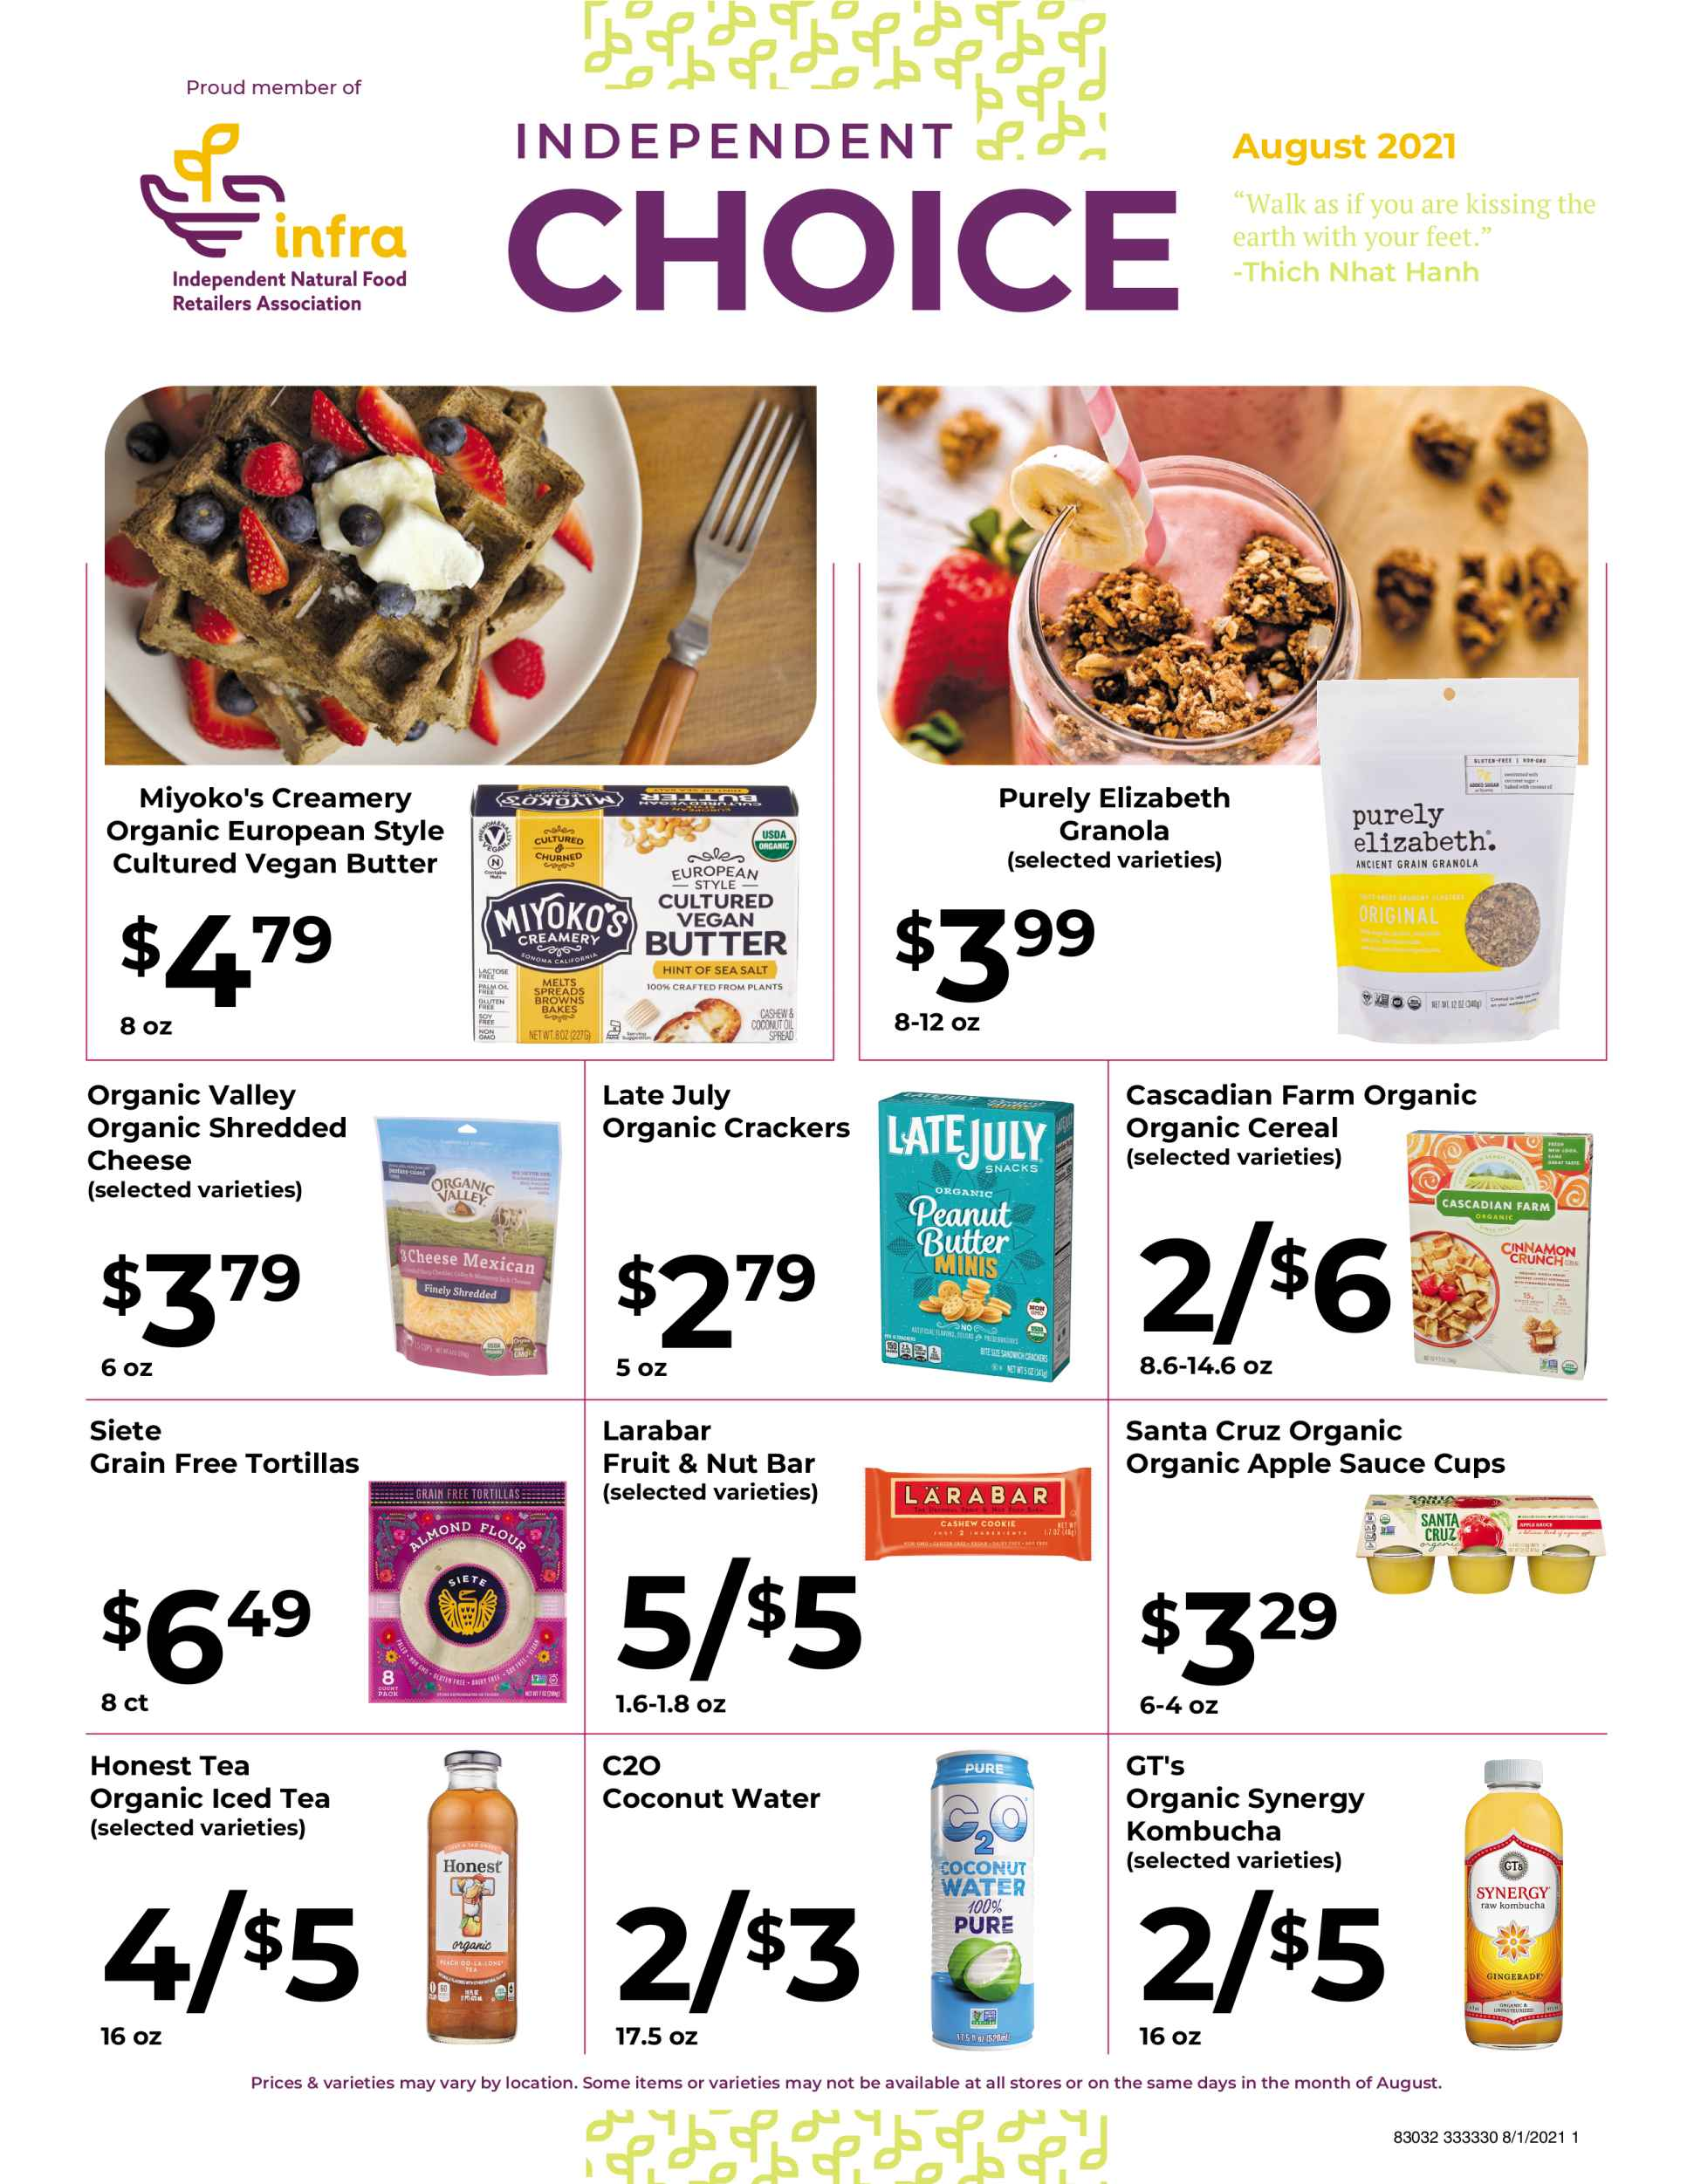 Natures pick market monthly sale page 1